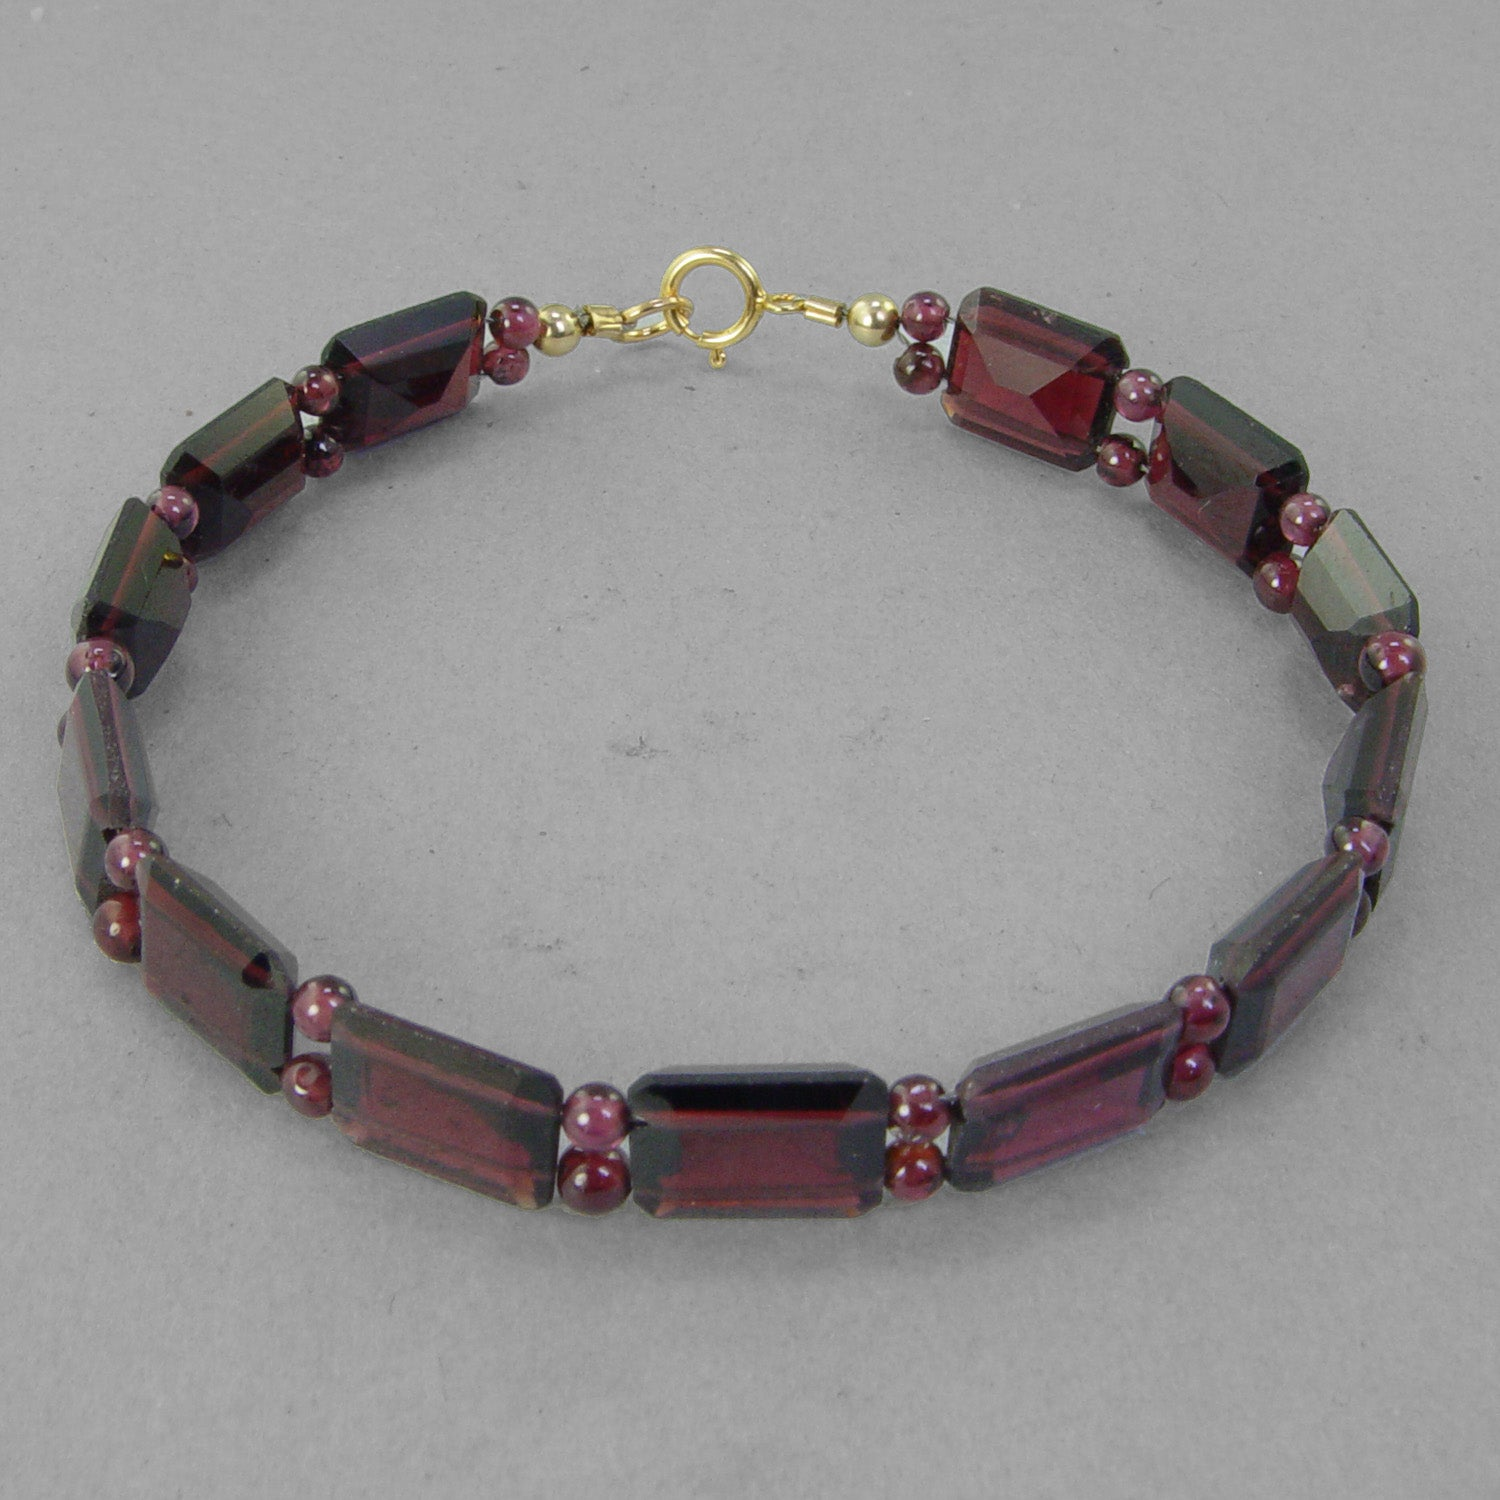 Garnet Faceted Emerald Cut Bracelet, 7.25 or 8""